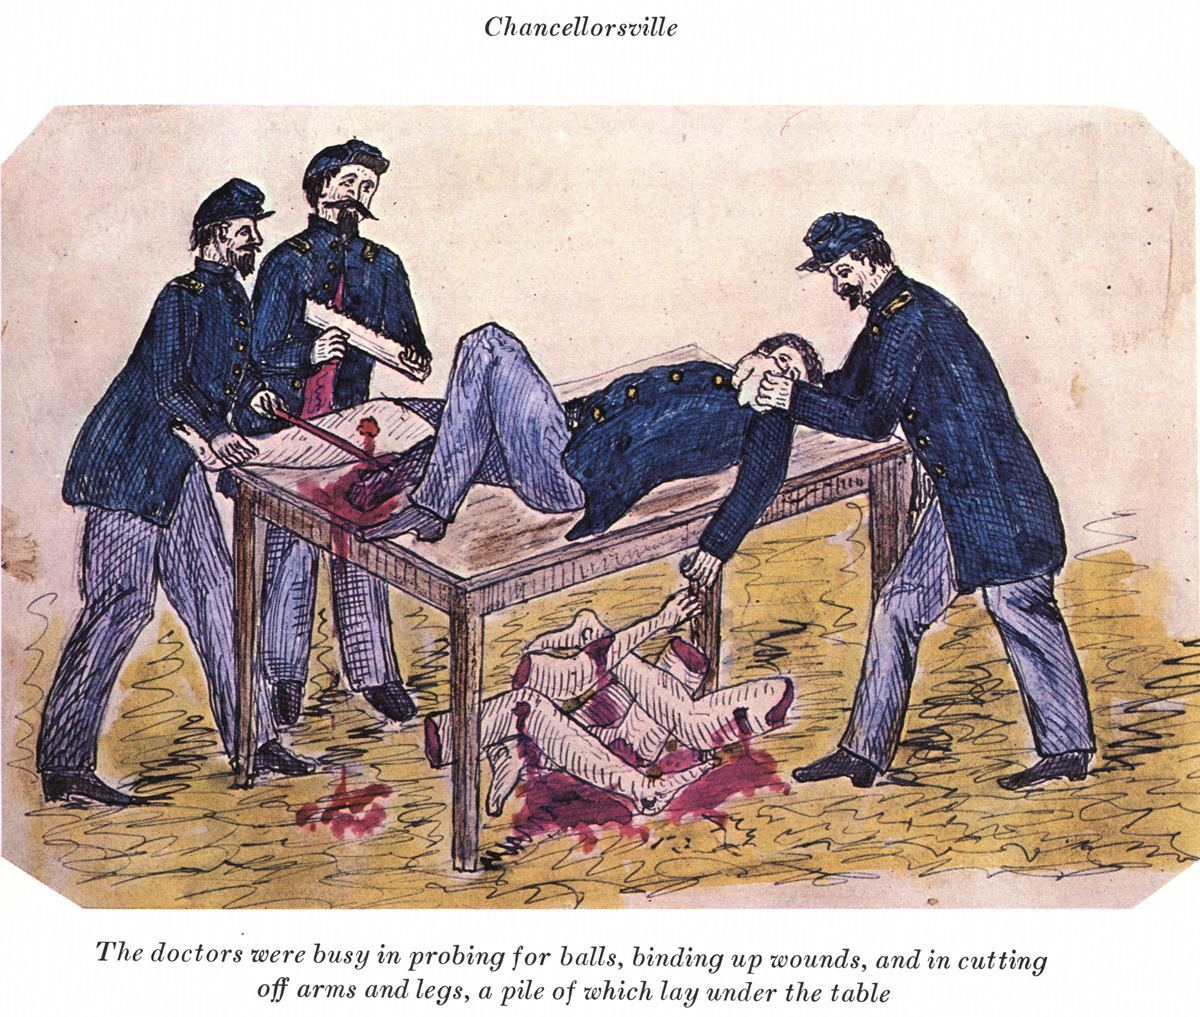 """""""The doctors were busy in probing for balls, binding up wounds, and in cutting off arms and legs, a pile of which lay under the table"""", drawings from the diary of Alfred Bellard, 1860s Courtesy Alec Thomas Archives"""